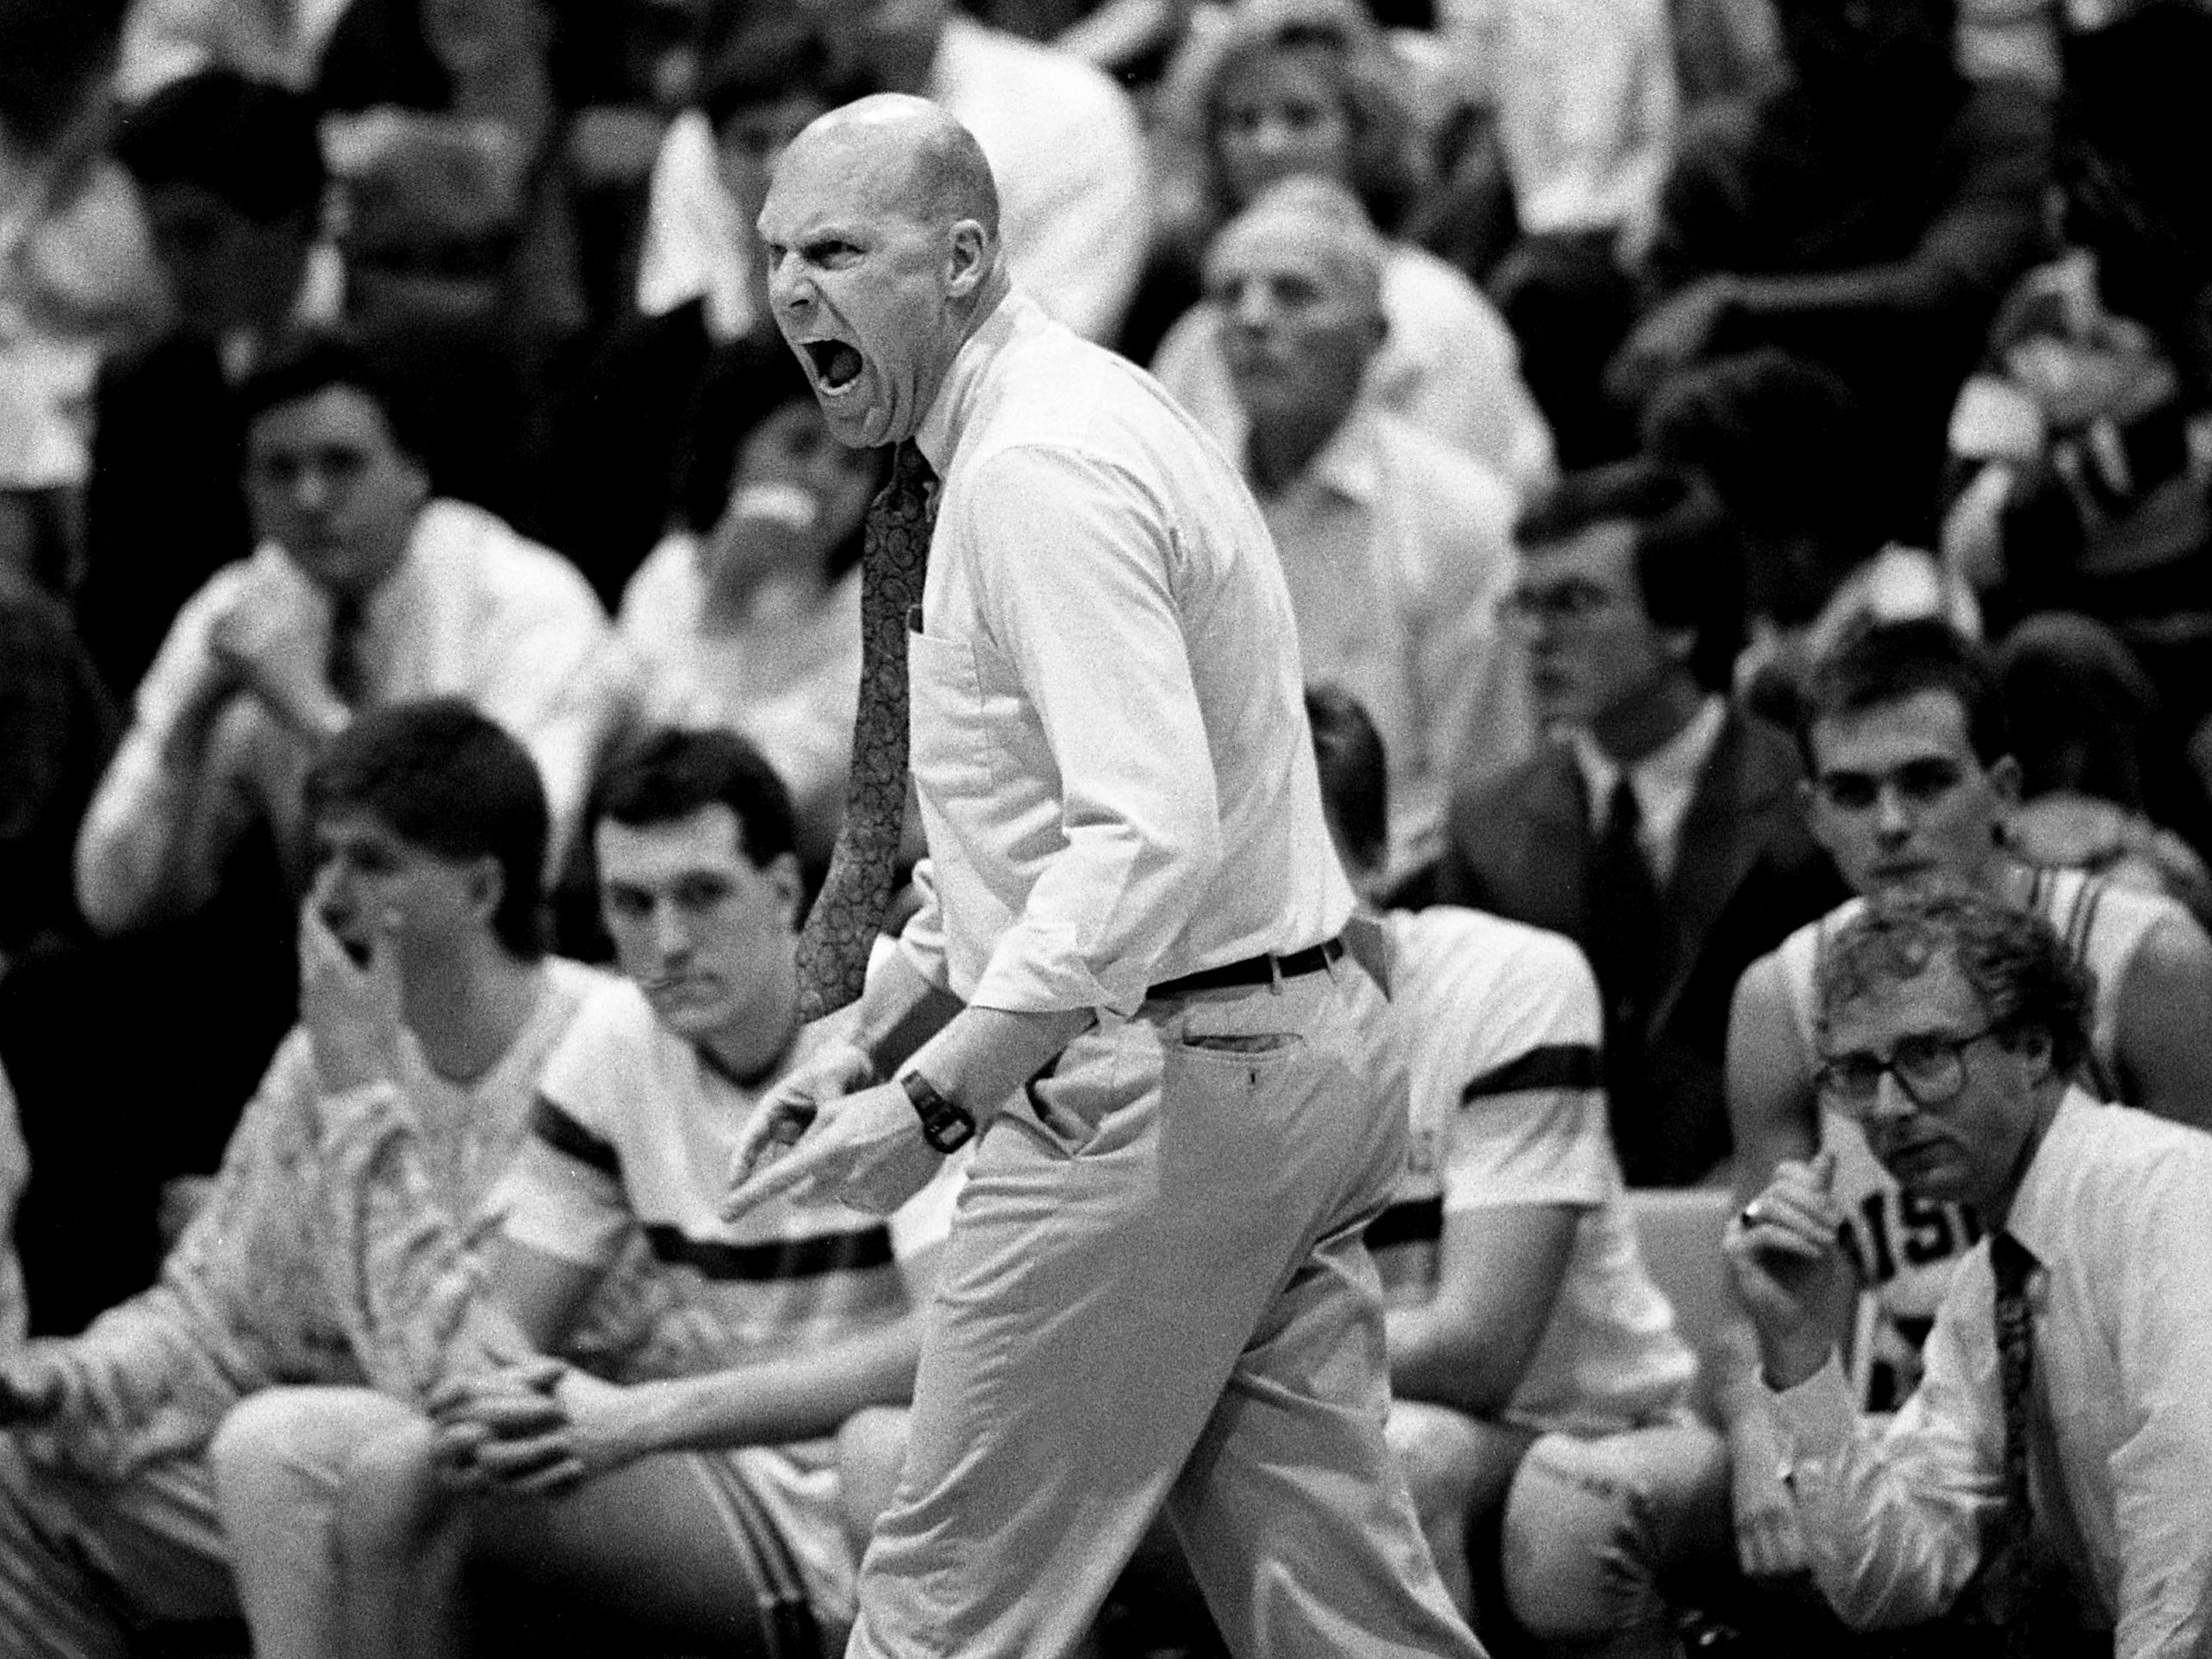 David Lipscomb head coach Don Meyer gets on his players as the nation's No. 1-ranked NAIA team defeated Christian Brothers of Memphis 103-91 before 3,300 at McQuiddy Gym on Feb. 2, 1989, to extend its winning streak to 31 games.